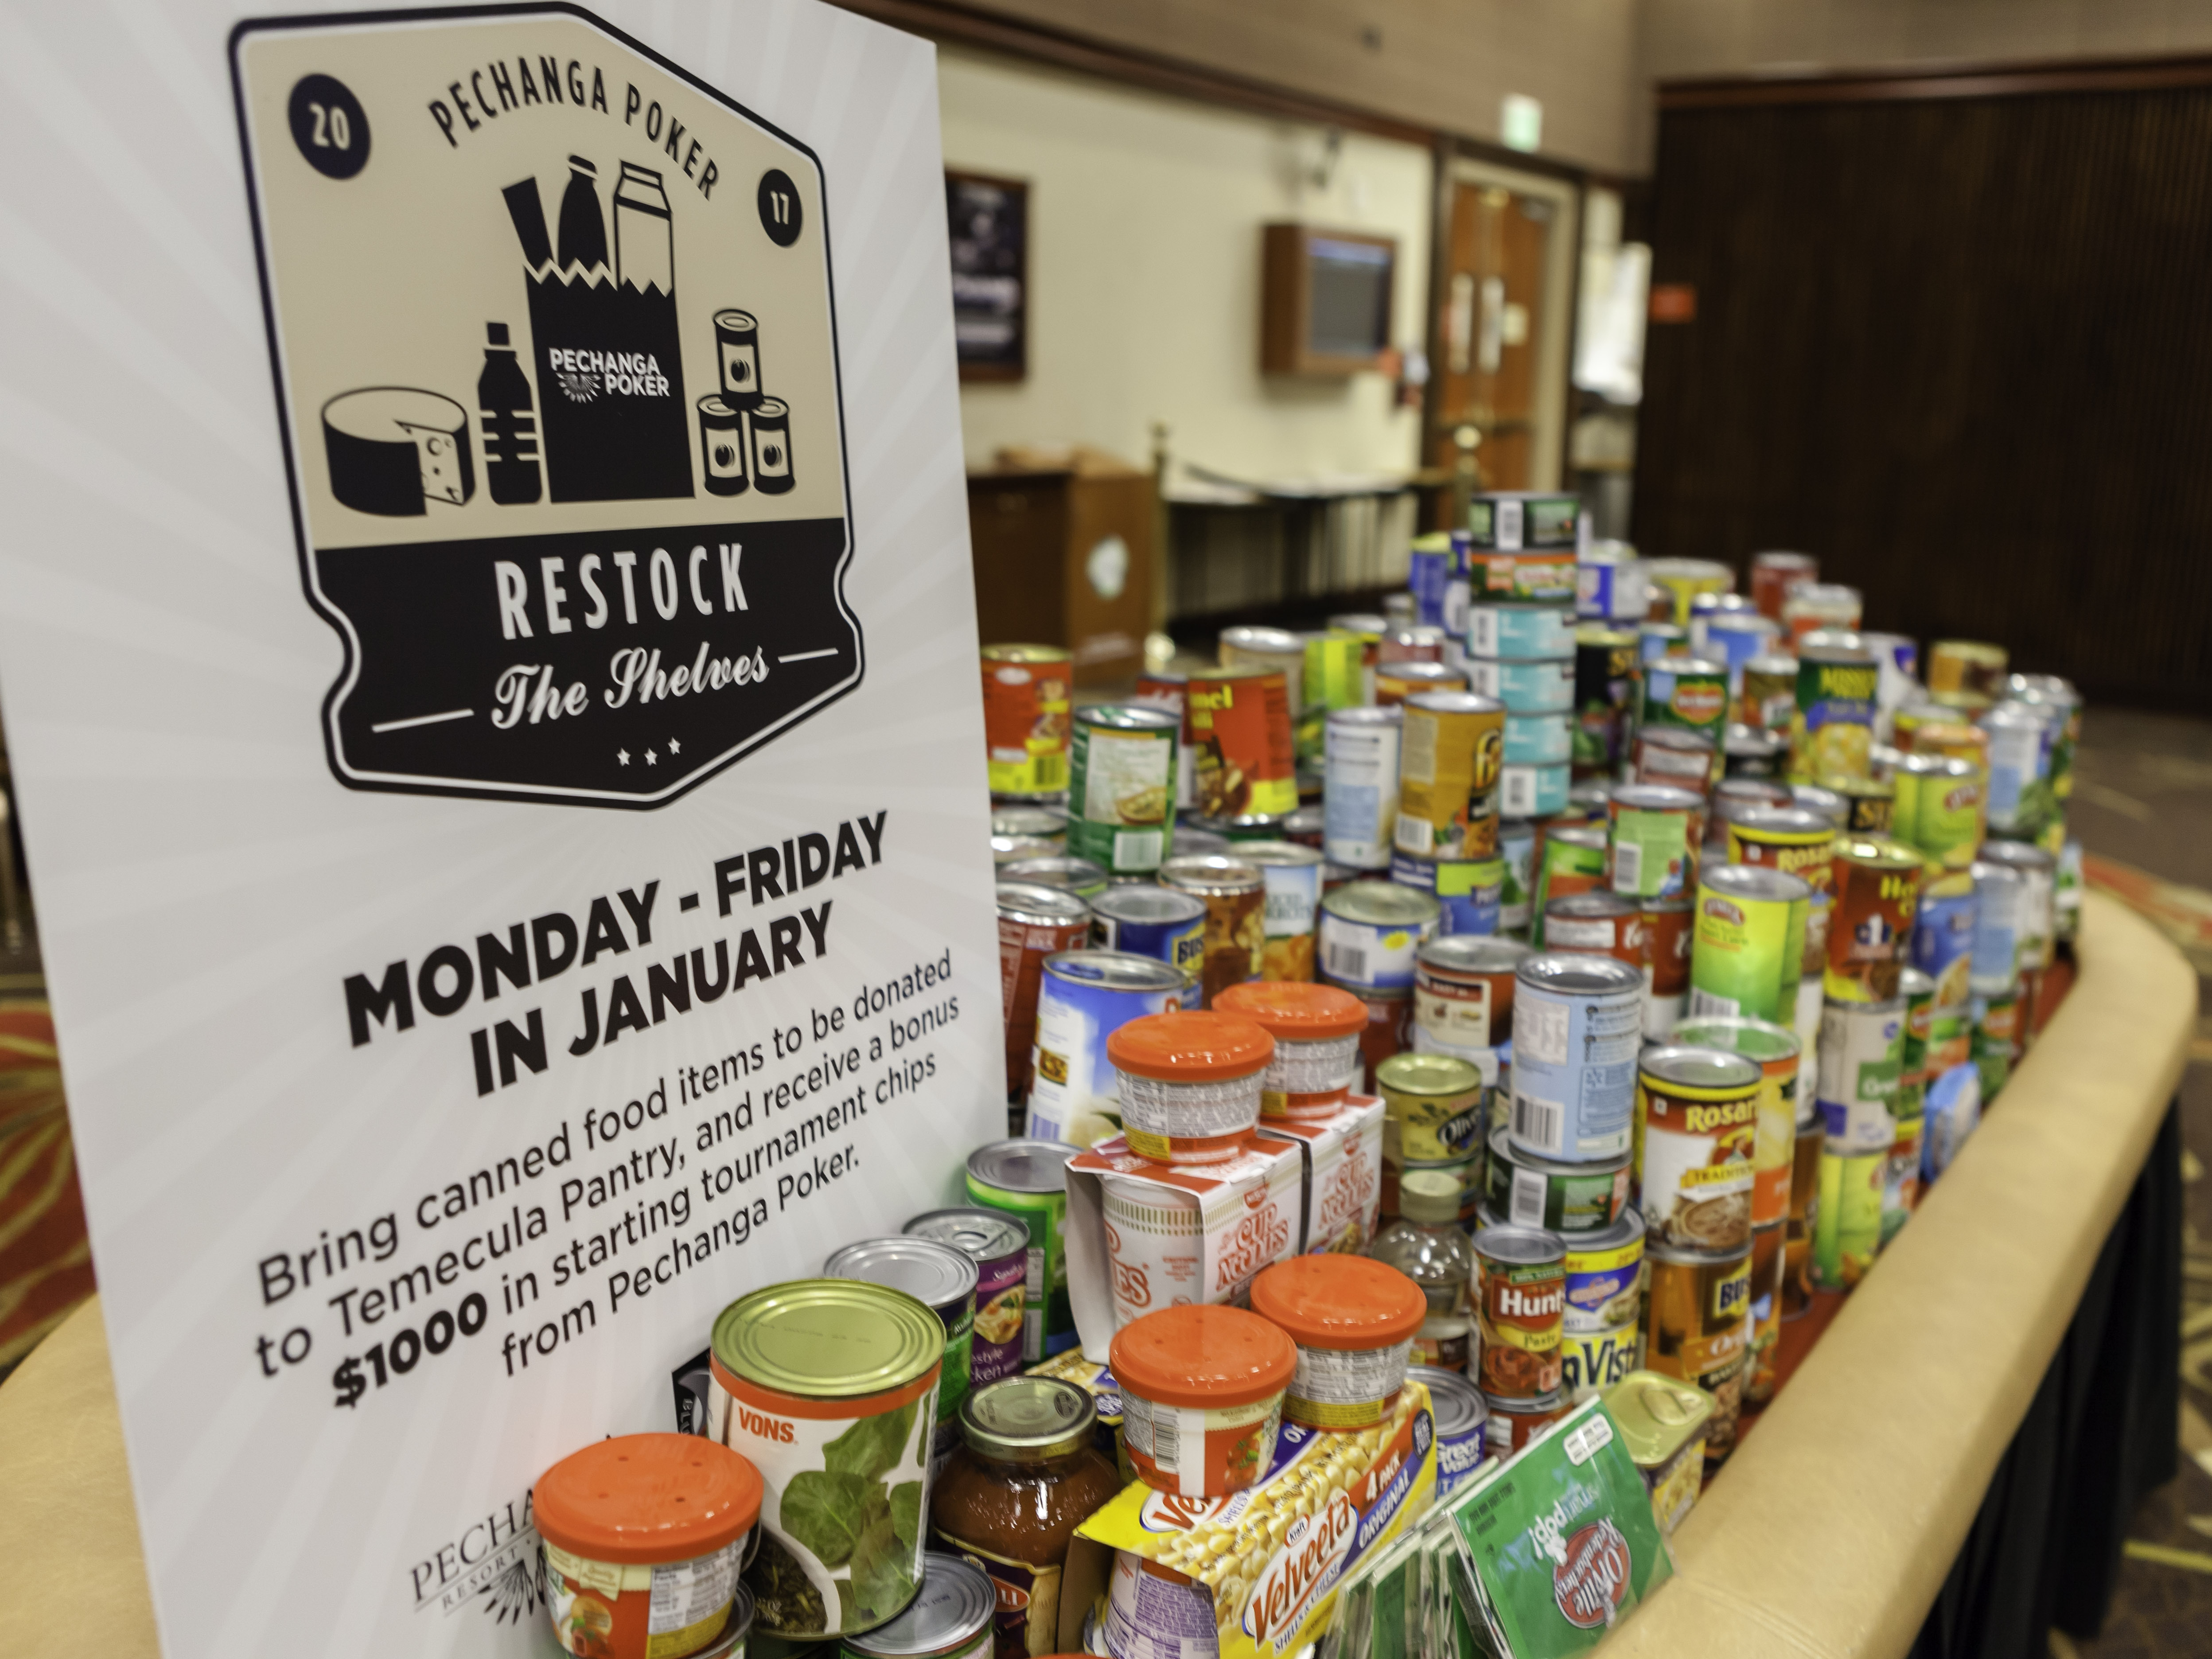 Pechanga Poker Restocks More Than 1 000 Pounds Of Food For